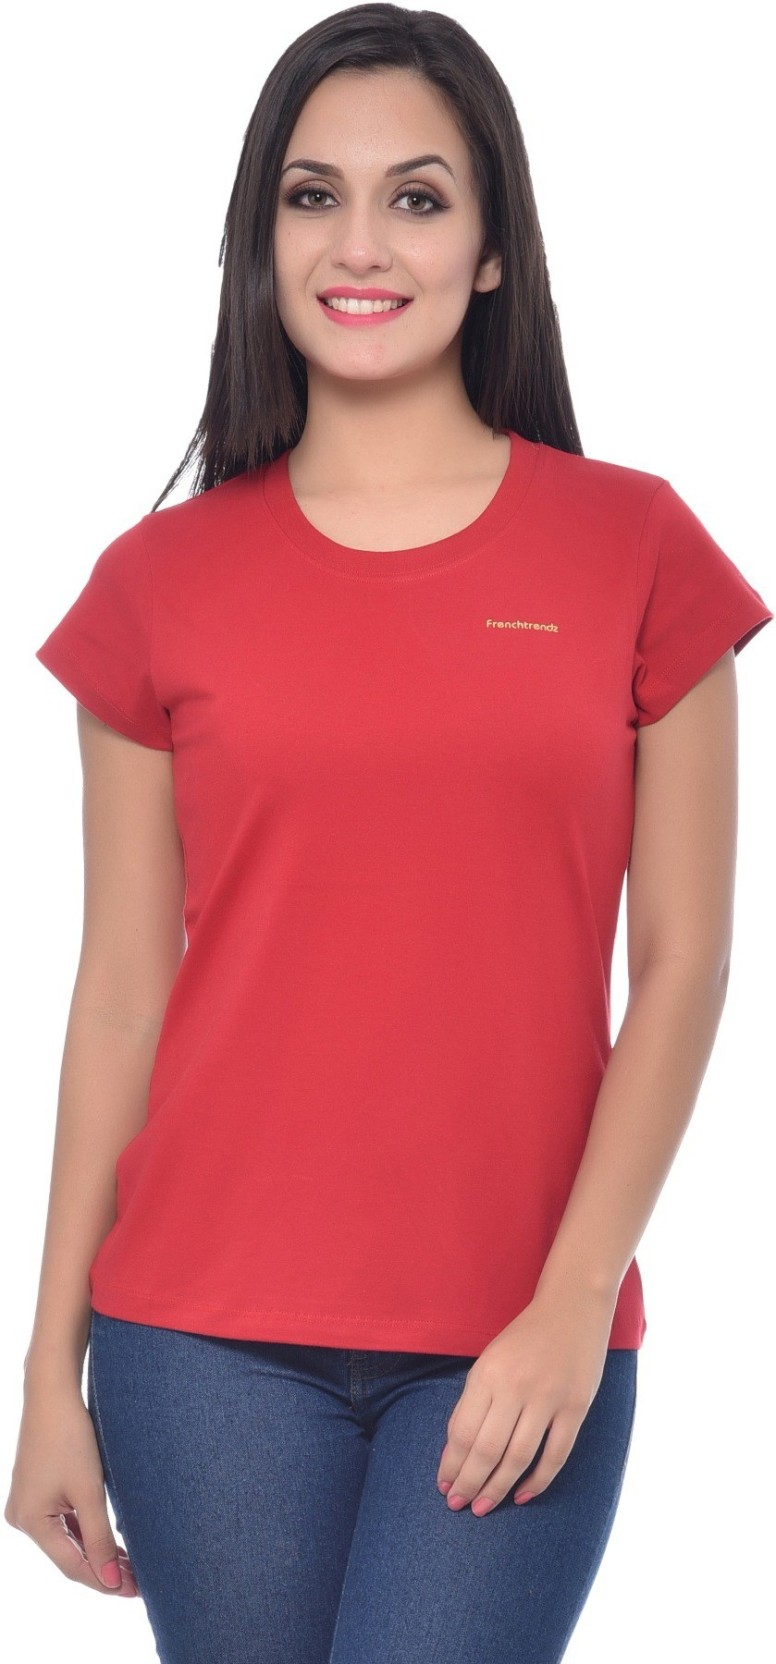 02bc4acbce48 Frenchtrendz Solid Women's Round Neck Red T-Shirt. ADD TO CART. BUY NOW